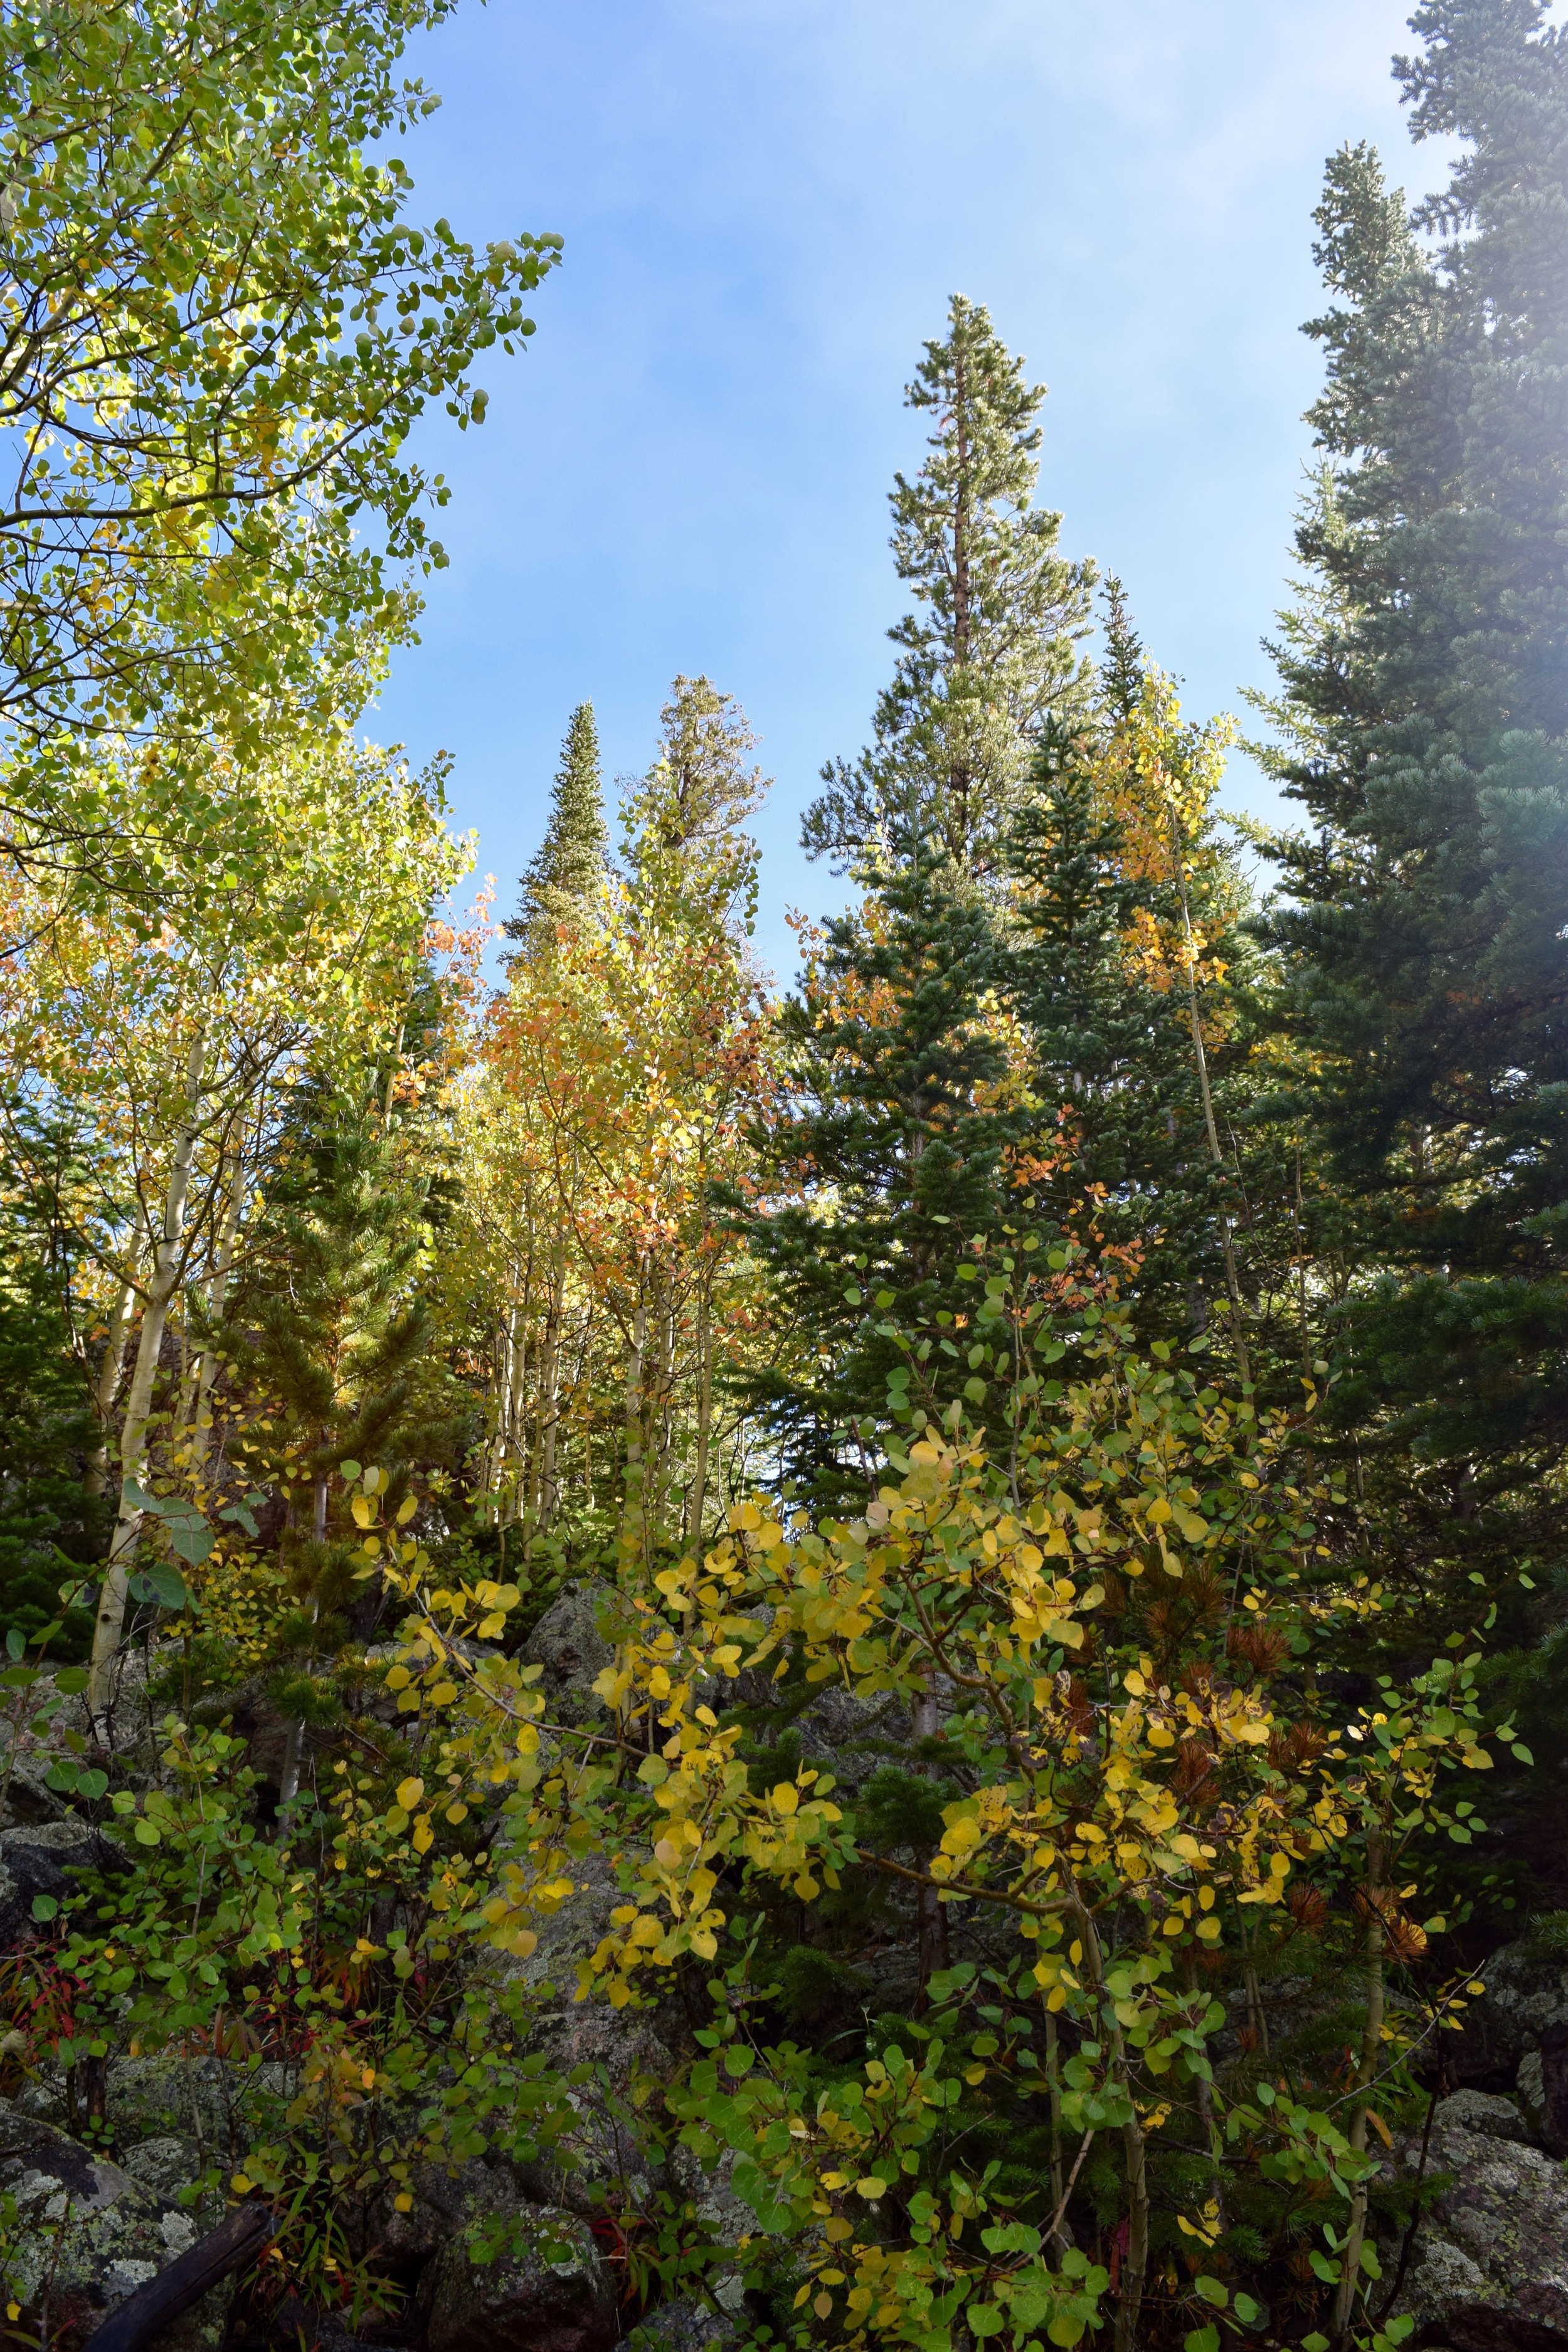 First signs of fall on the shores of Bear Lake, so excited for the aspens to all turn gold